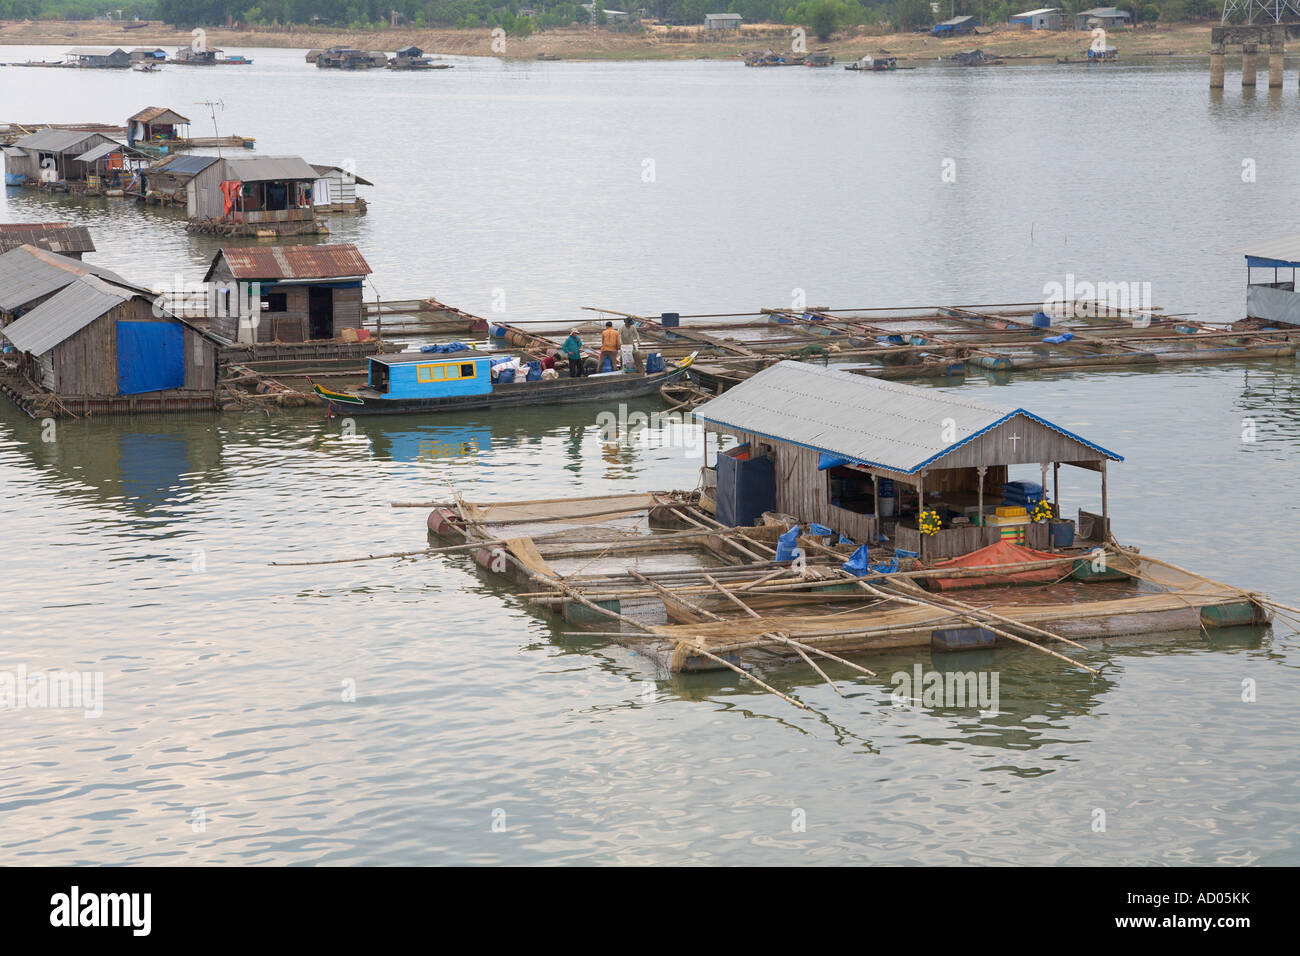 Floating 'fishing village' on 'Tri An' reservoir 'Dong Nai Province' Vietnam - Stock Image